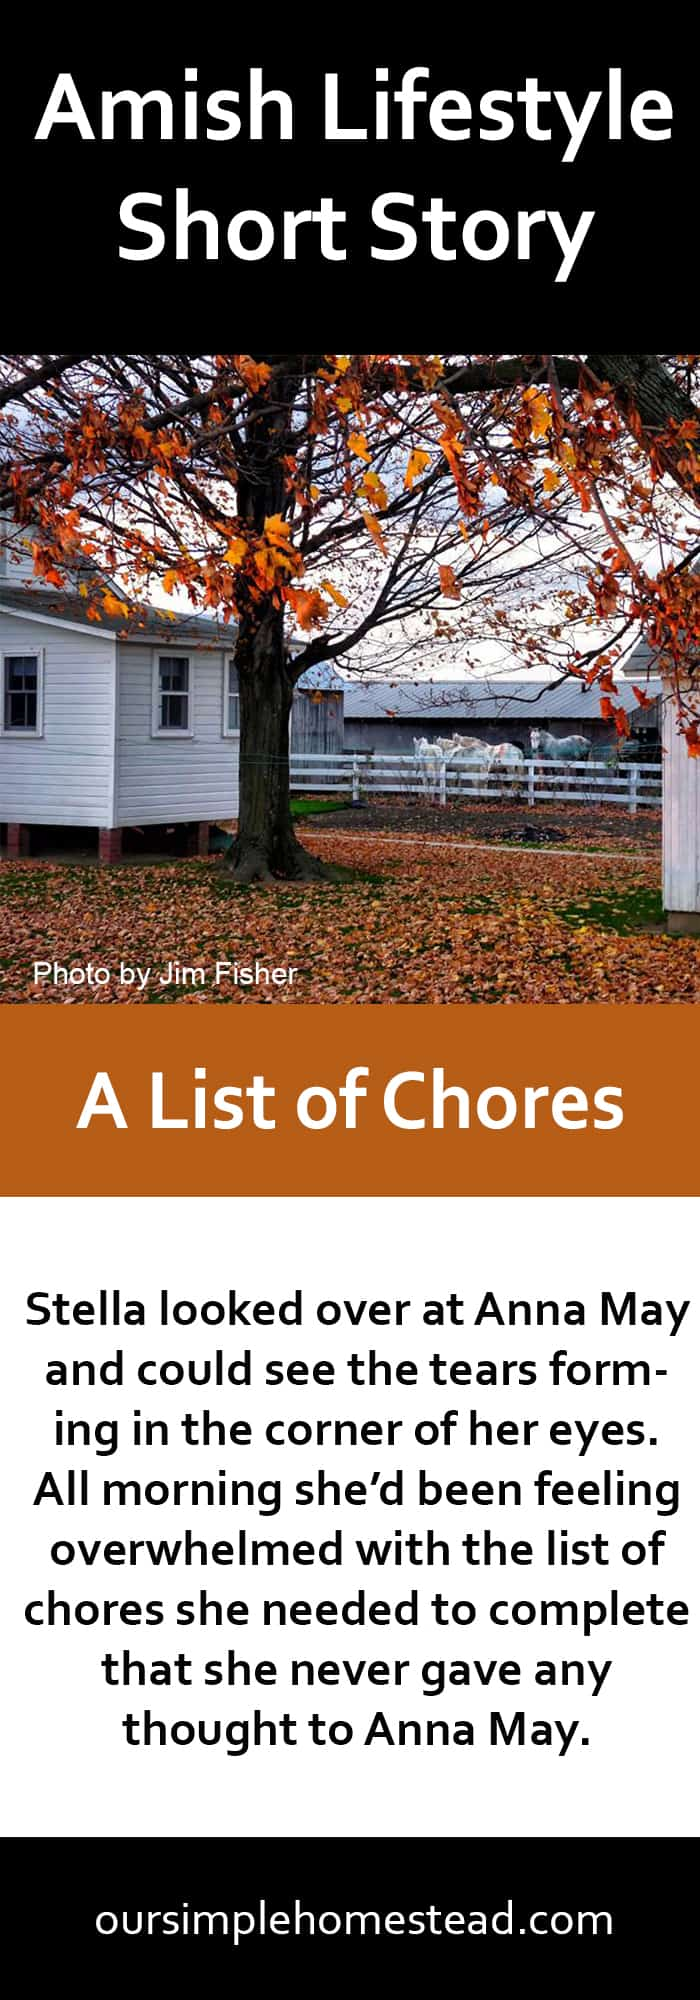 Amish Lifestyle Short Story - A List of Chores